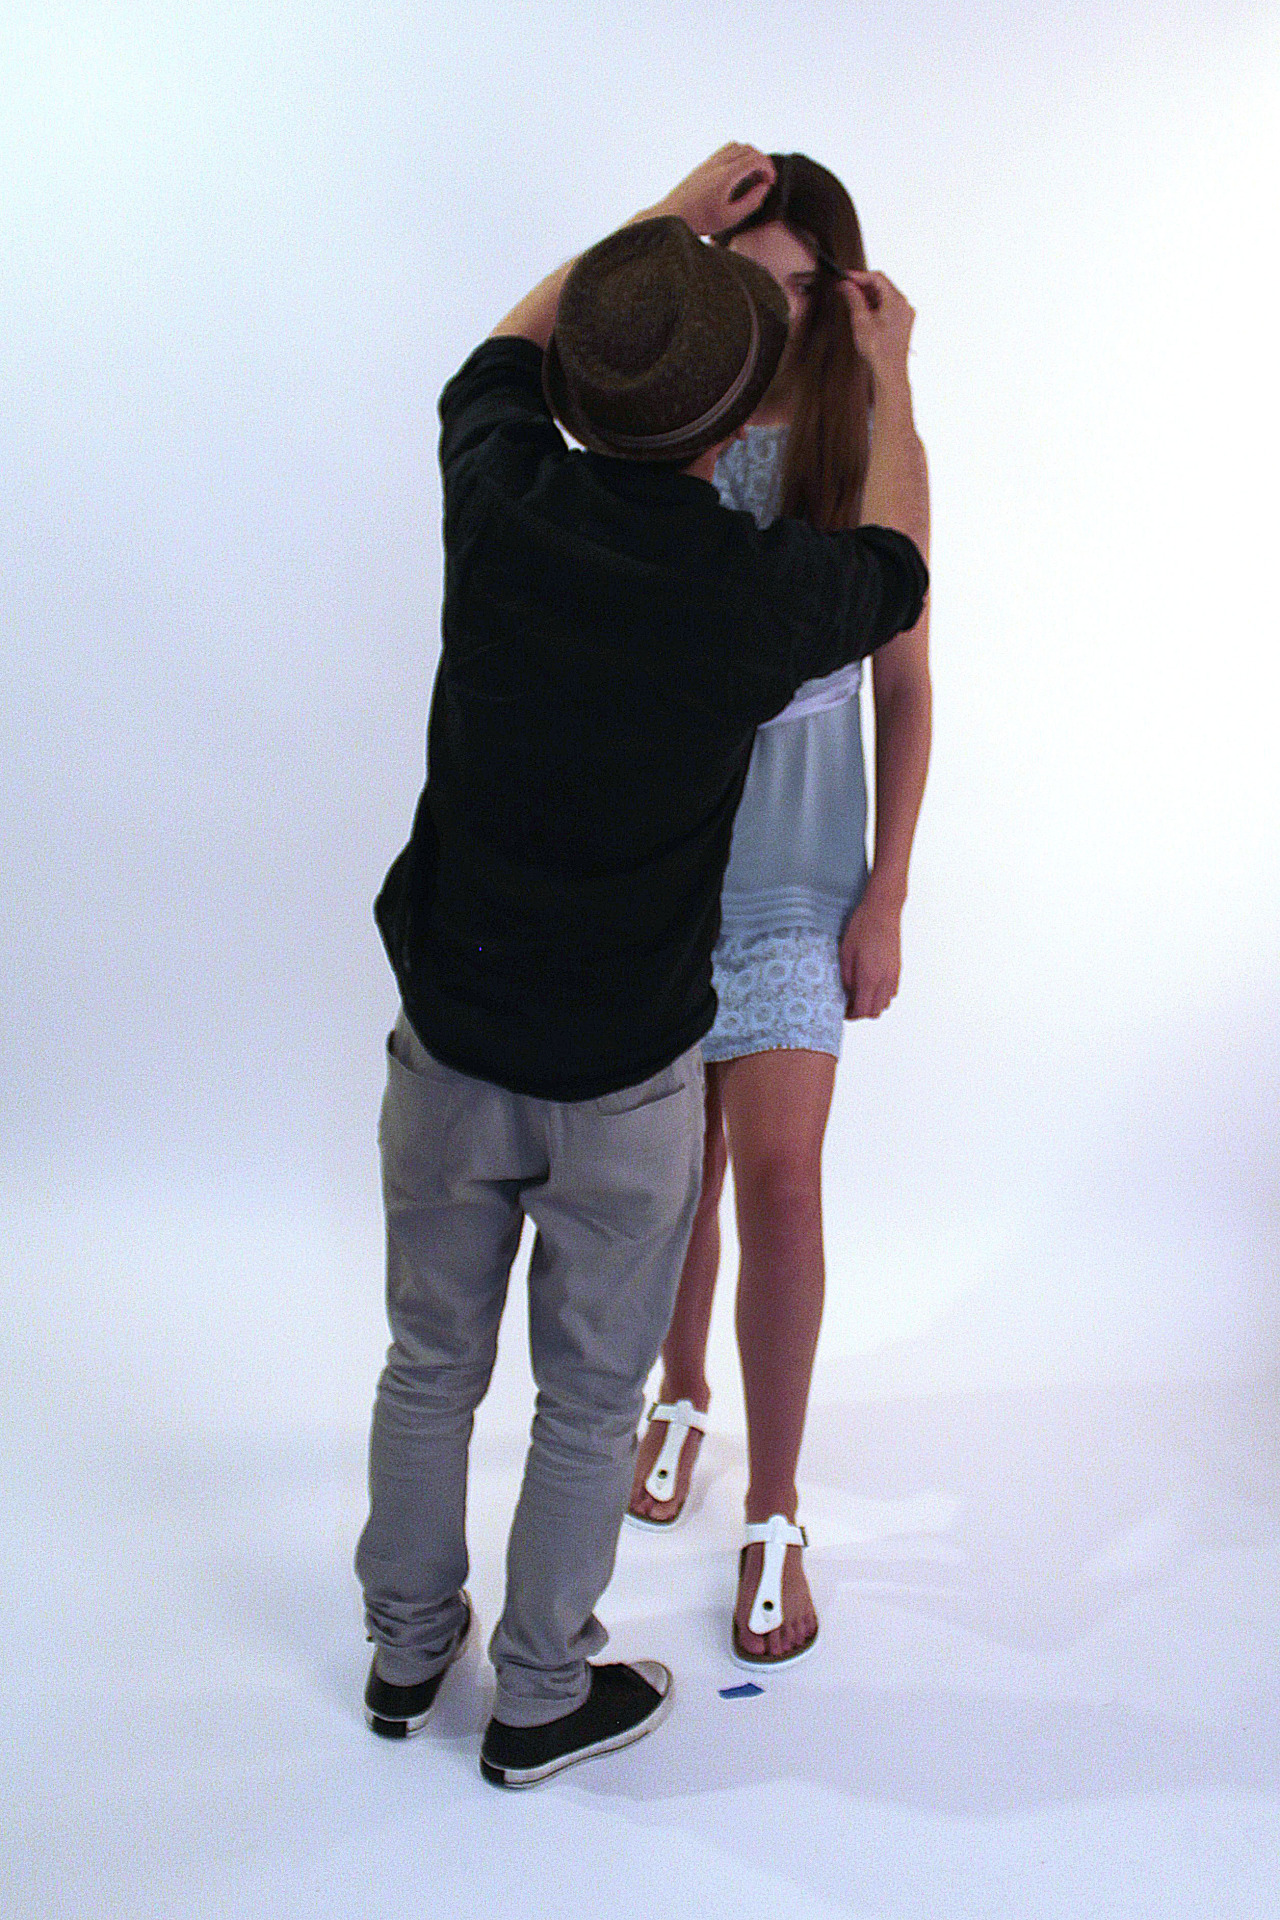 Here's another behind the scenes shot from our new collection!